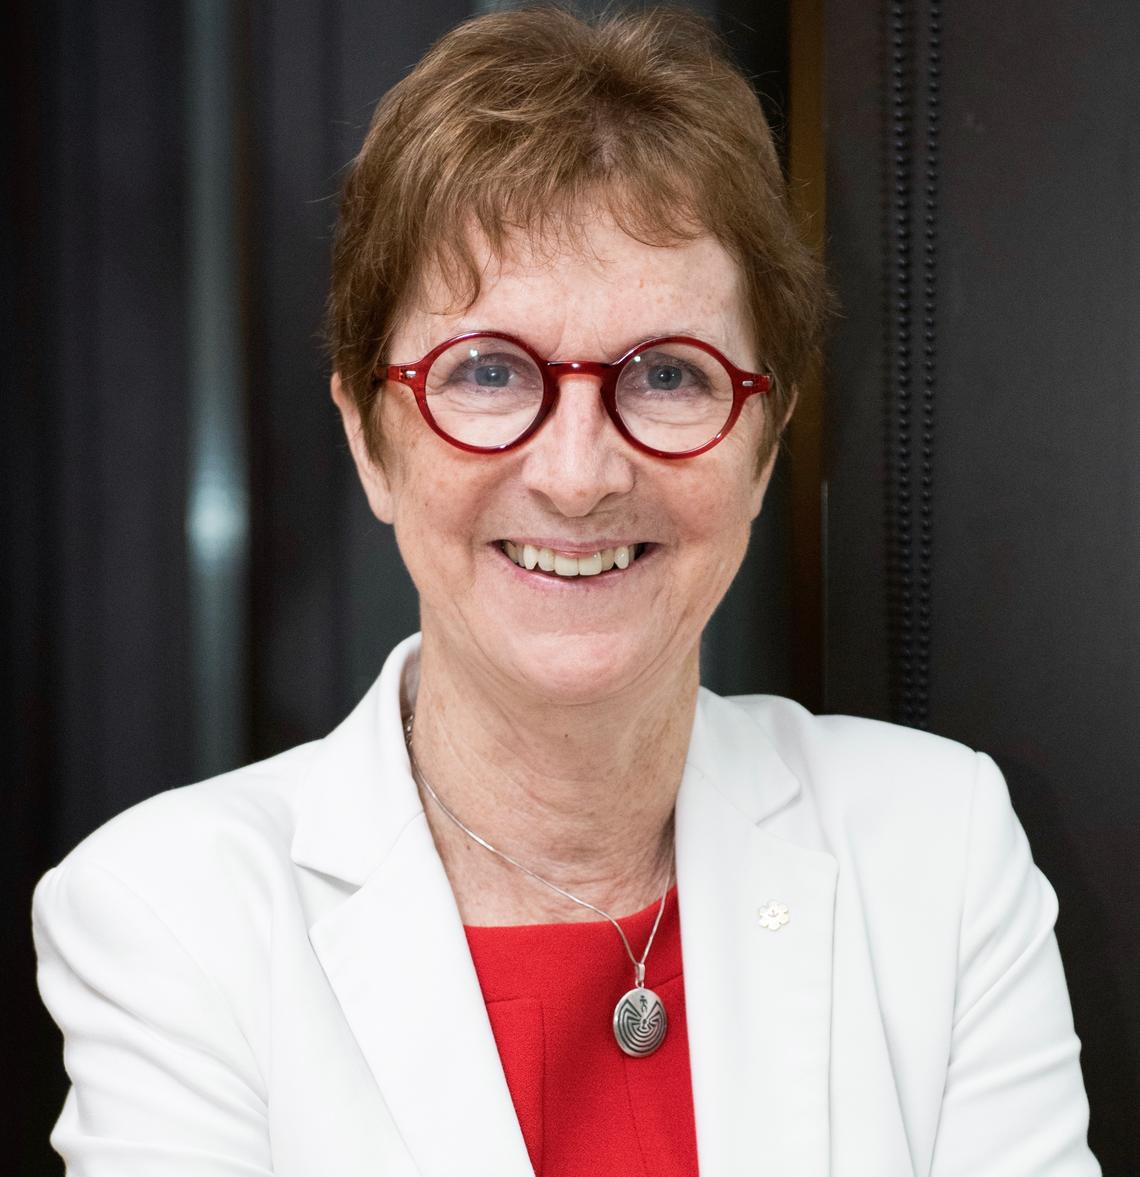 Janet Rossant is the president and scientific director of the Gairdner Foundation, senior scientist in the development and stem cell biology program at The Hospital for Sick Children and chief of research emerita of The Hospital for Sick Children.